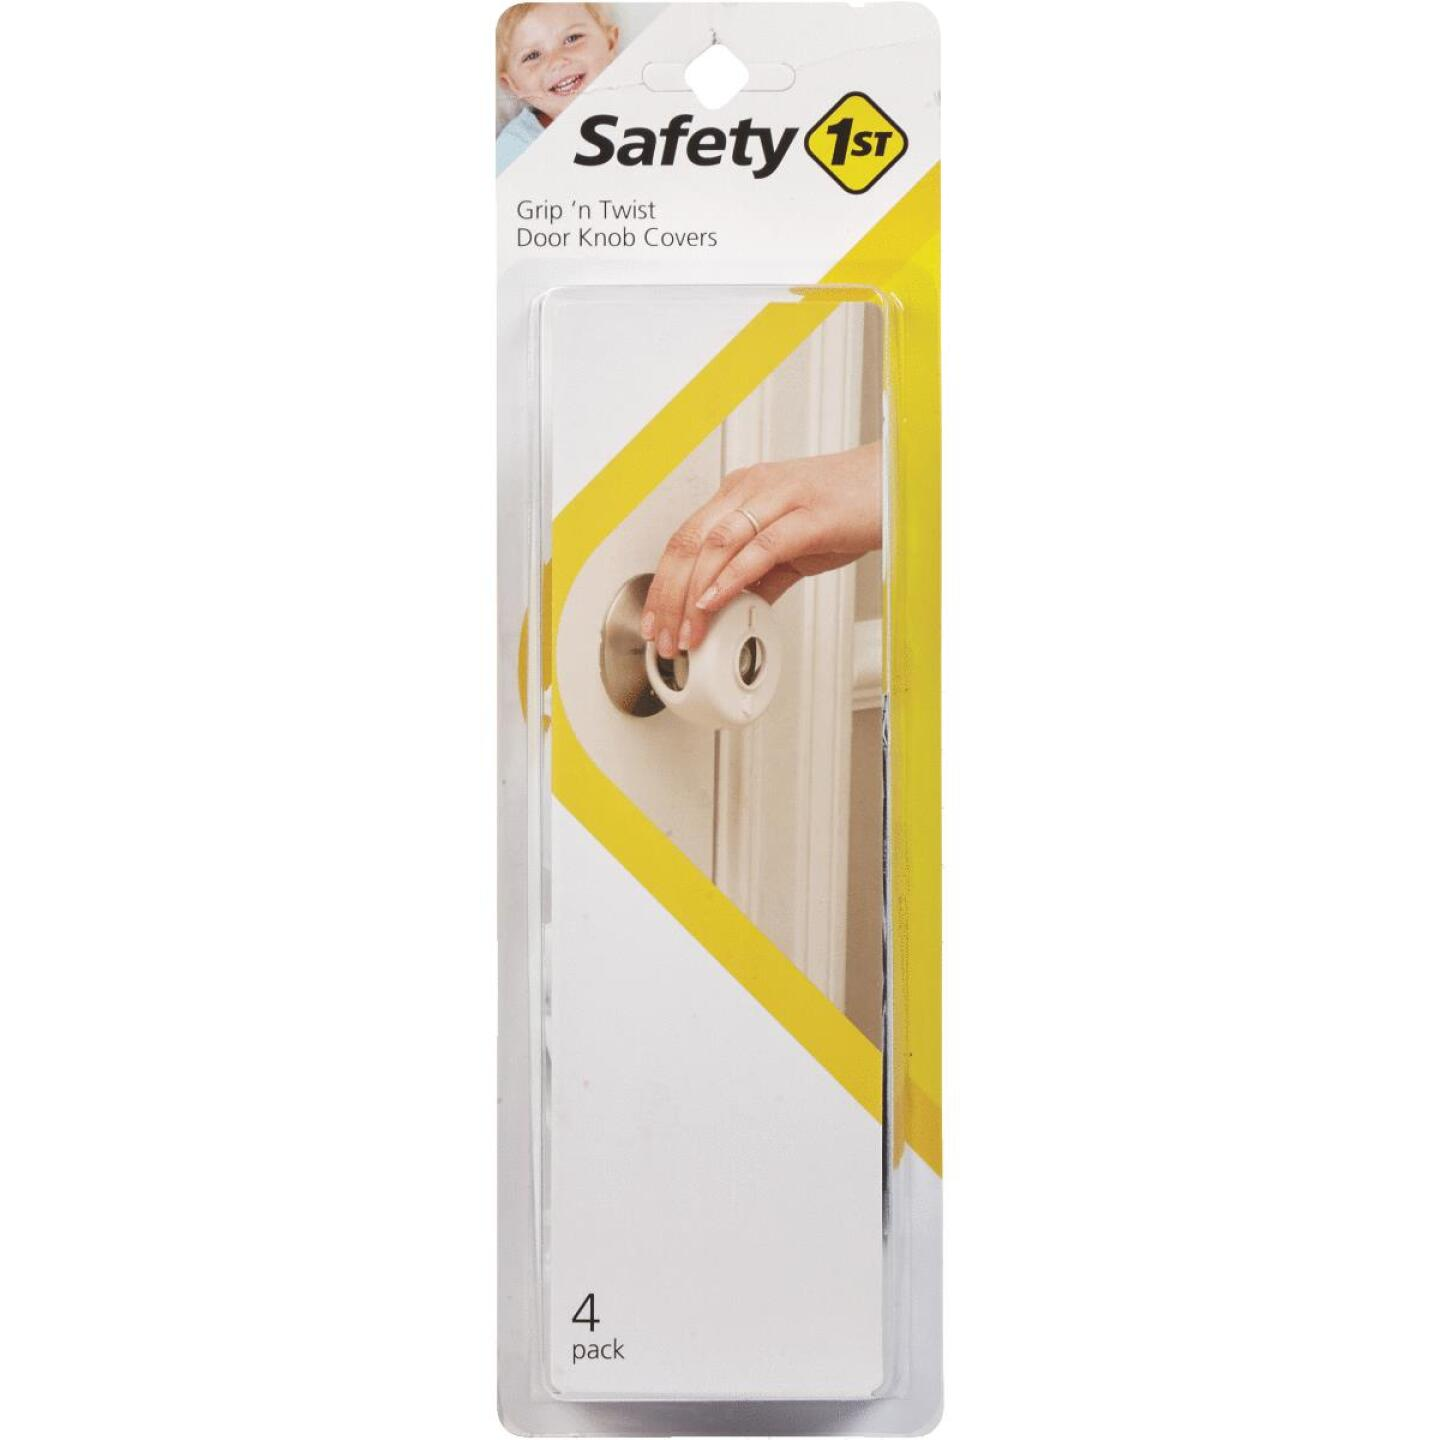 Safety 1st Grip n' Twist Snap-On White Door Knob Cover (4-Pack) Image 1